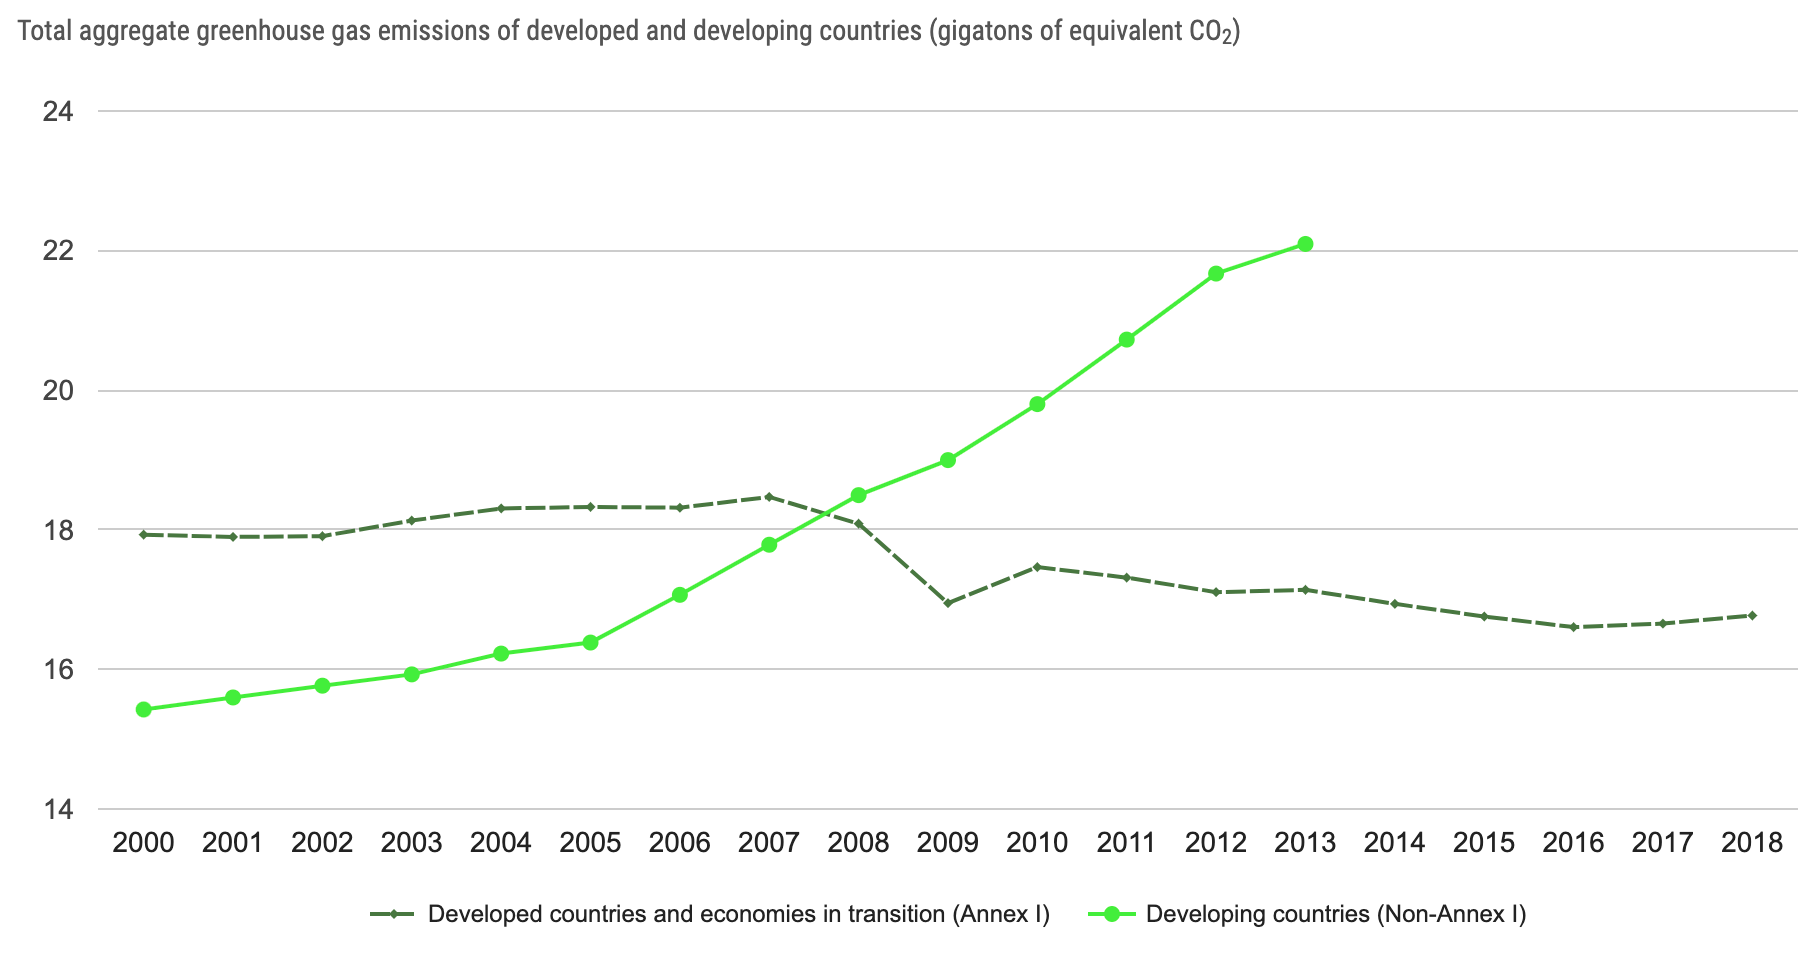 Greenhouse gas emissions of developed and developing countries, 2000-2018